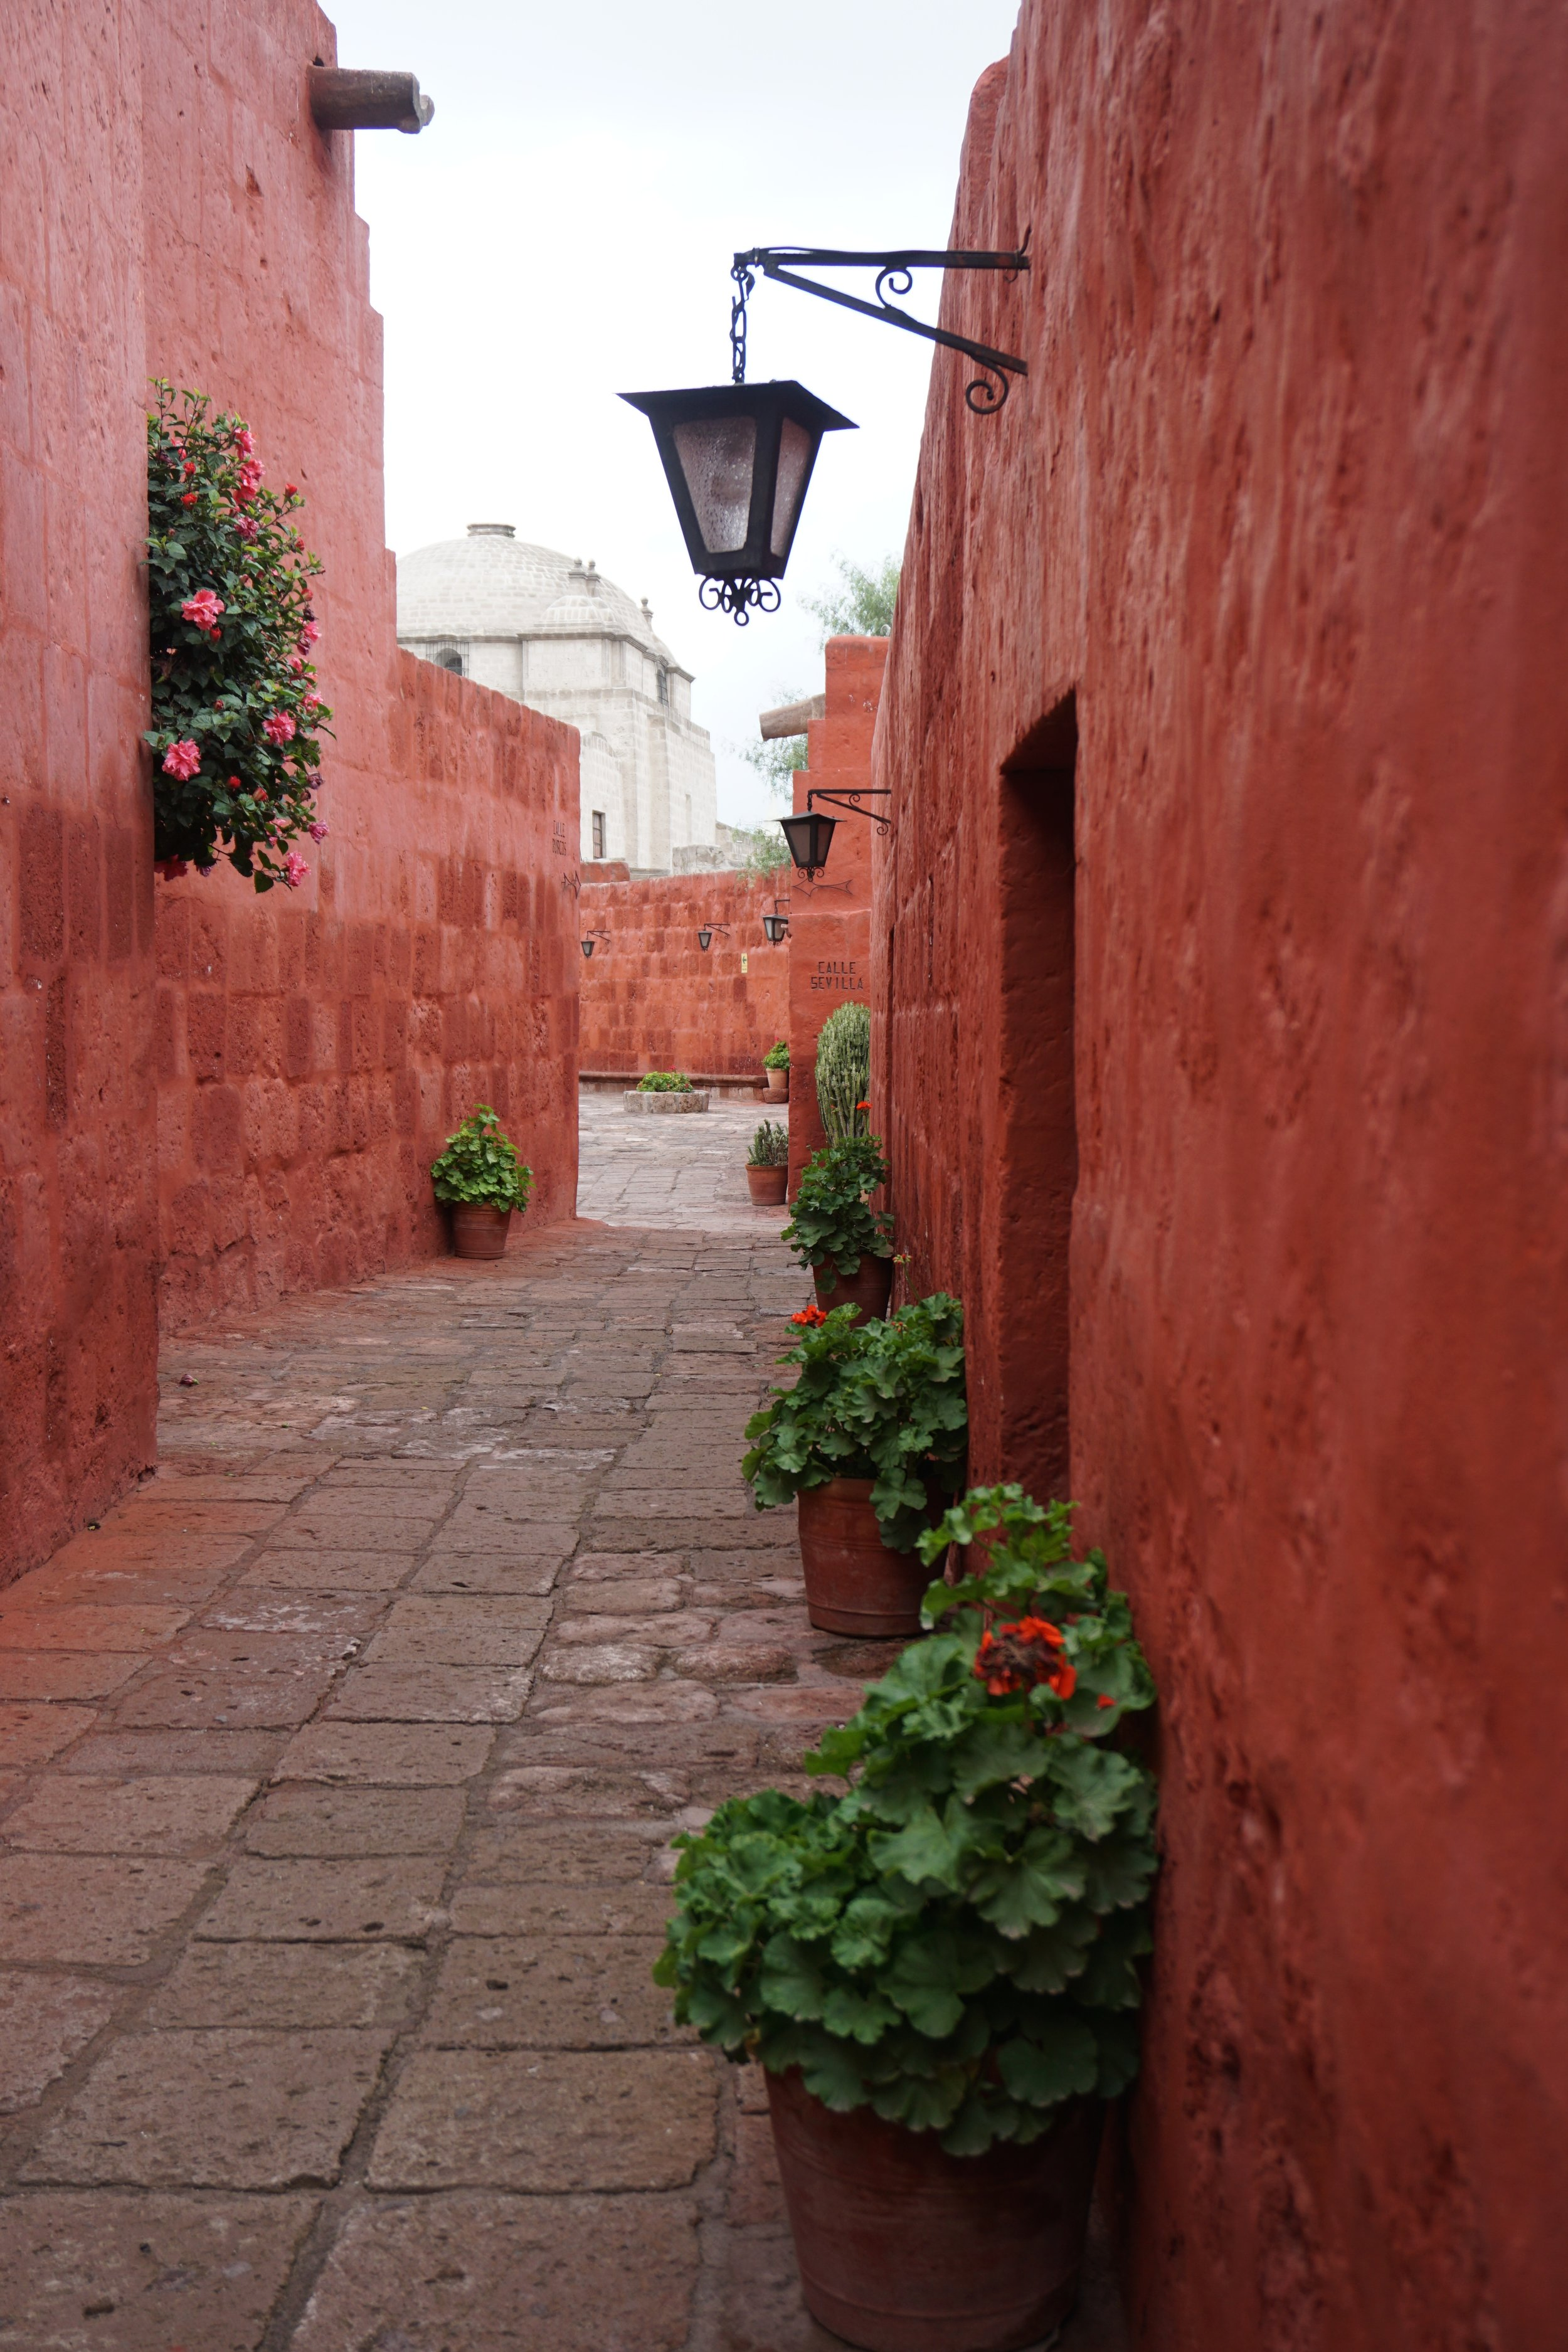 The Monasterio de Santa Catalina is full of inviting alleys and passageways